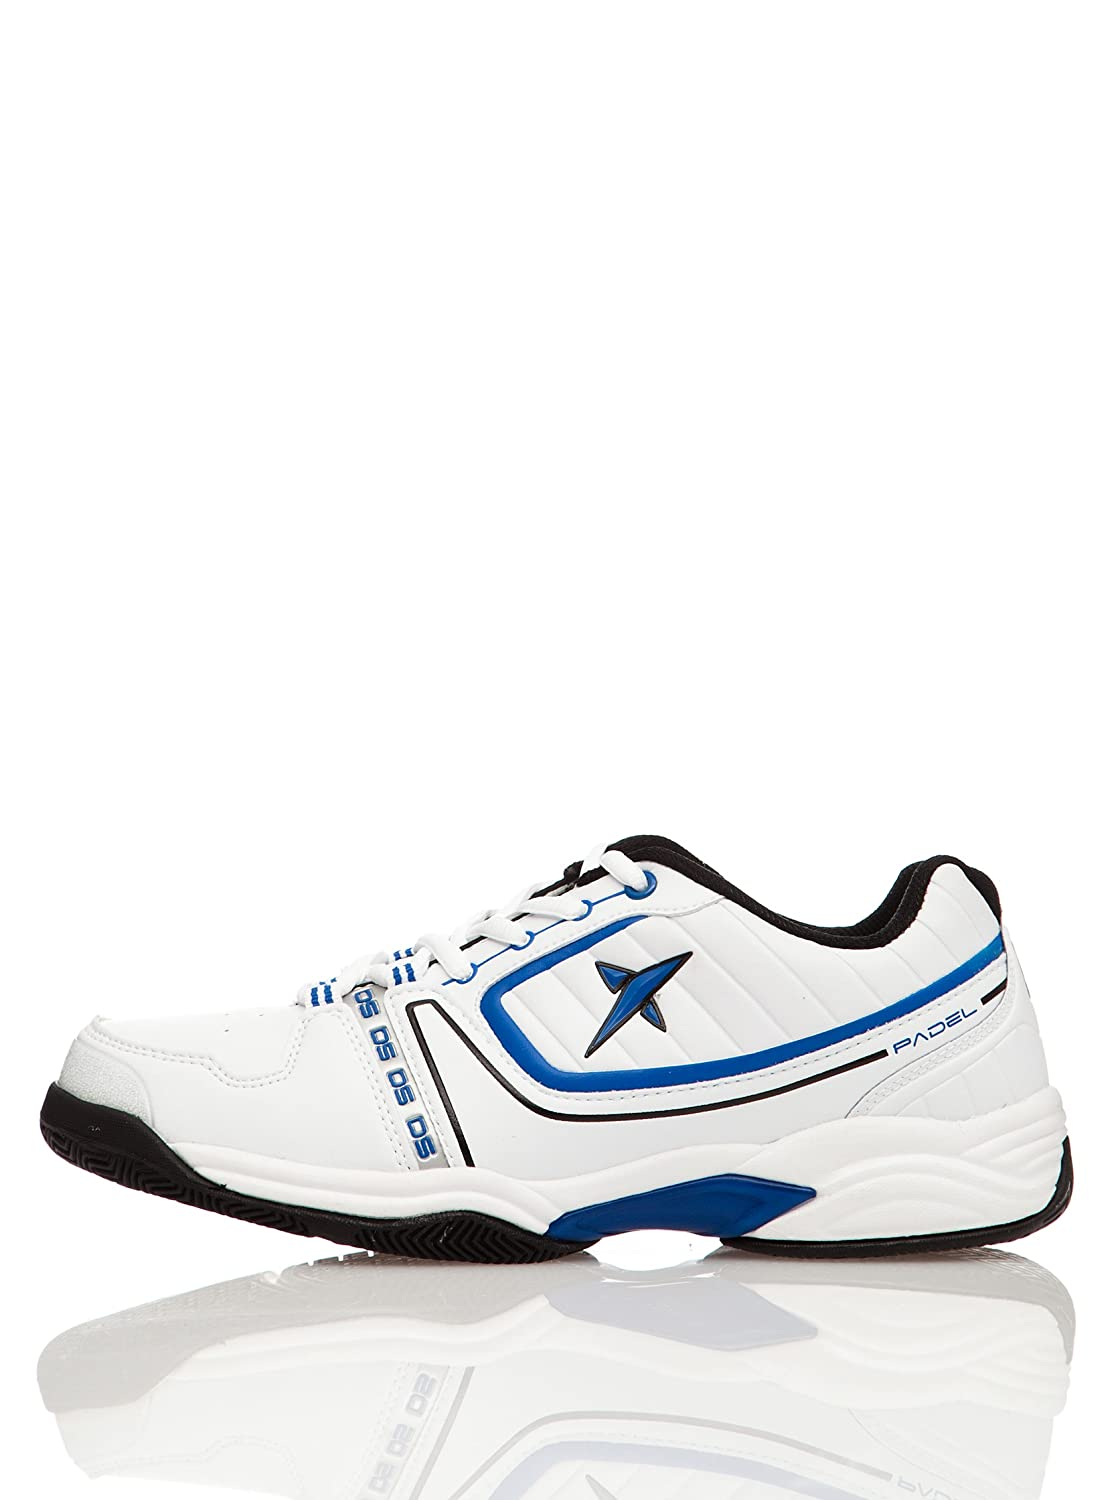 DROP SHOT Zapatillas Sky Tech Blanco 40: Amazon.es: Zapatos y ...